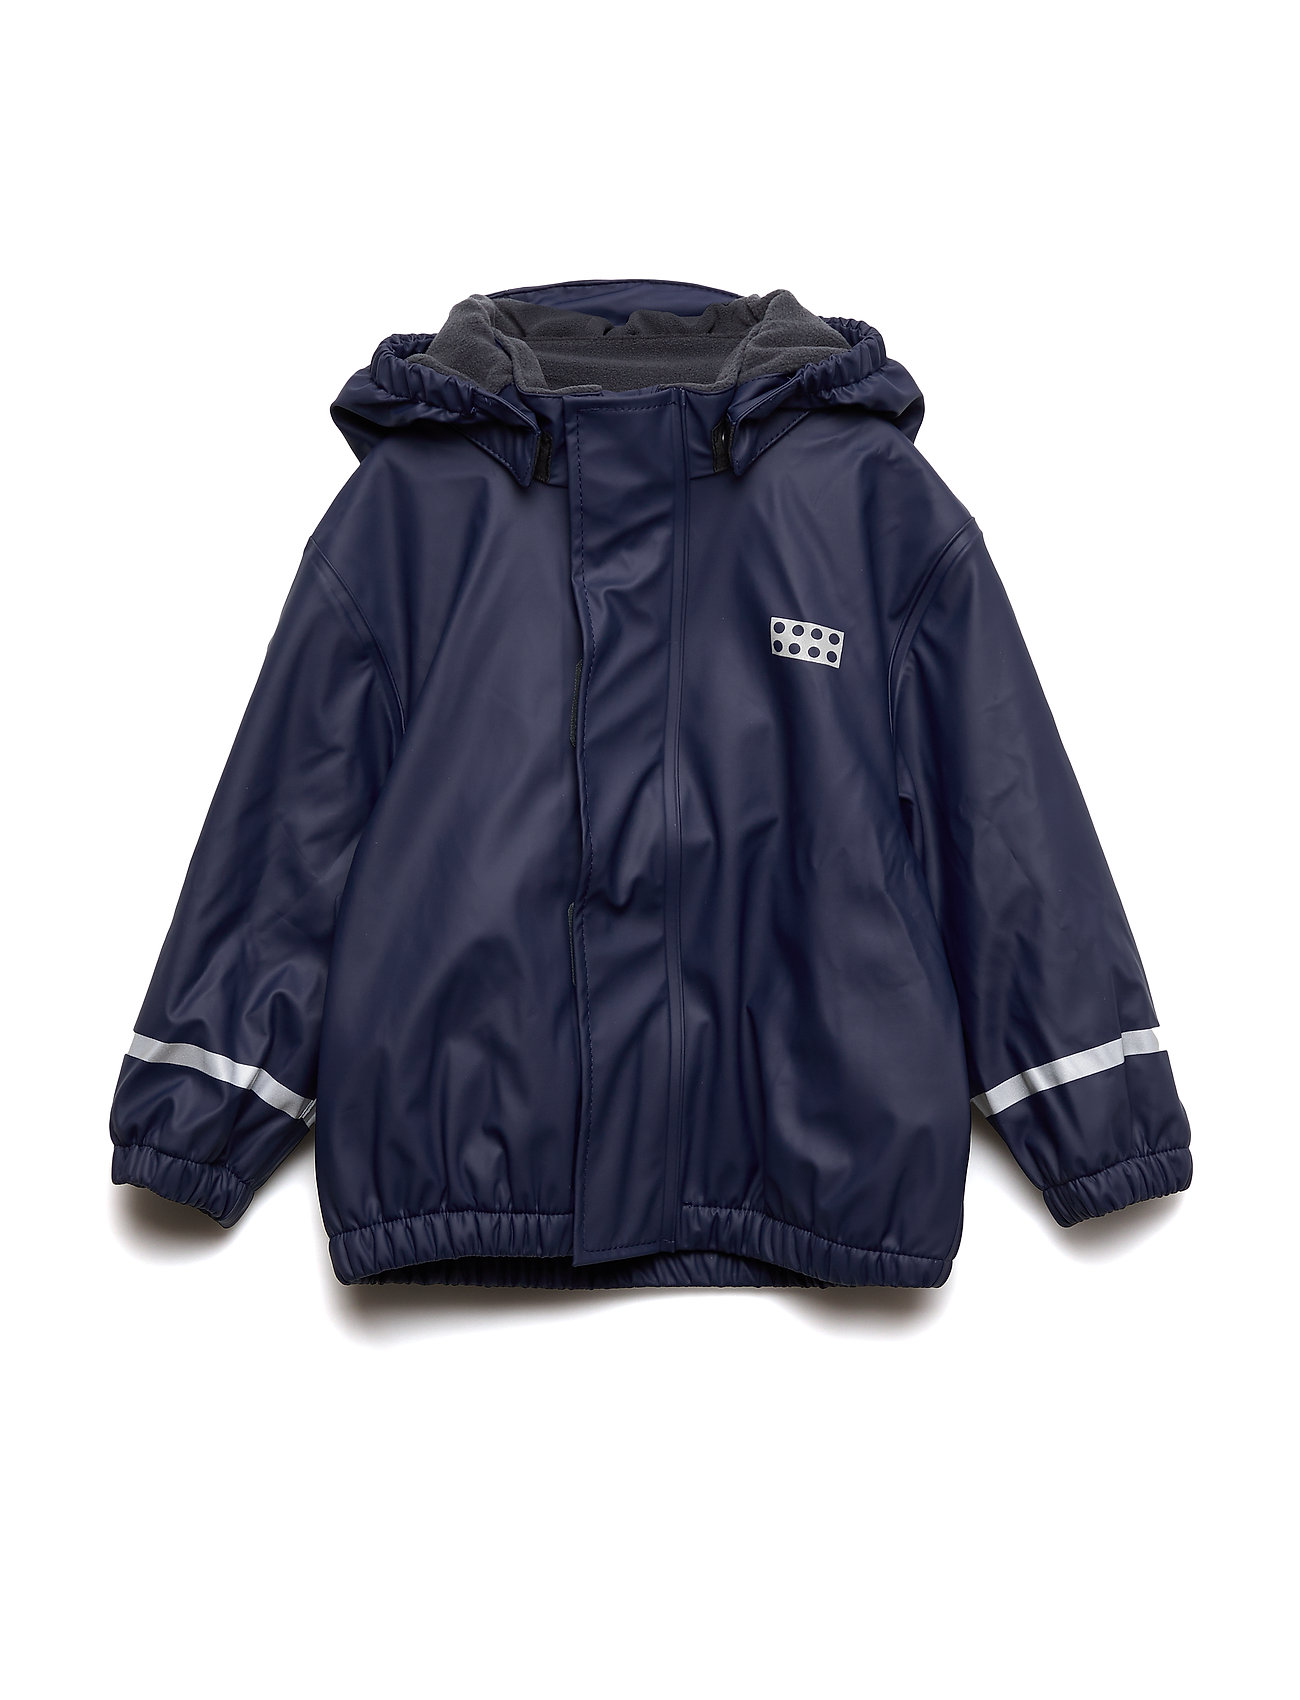 Lego wear LWJULIAN 715 - RAIN JACKET - DARK NAVY